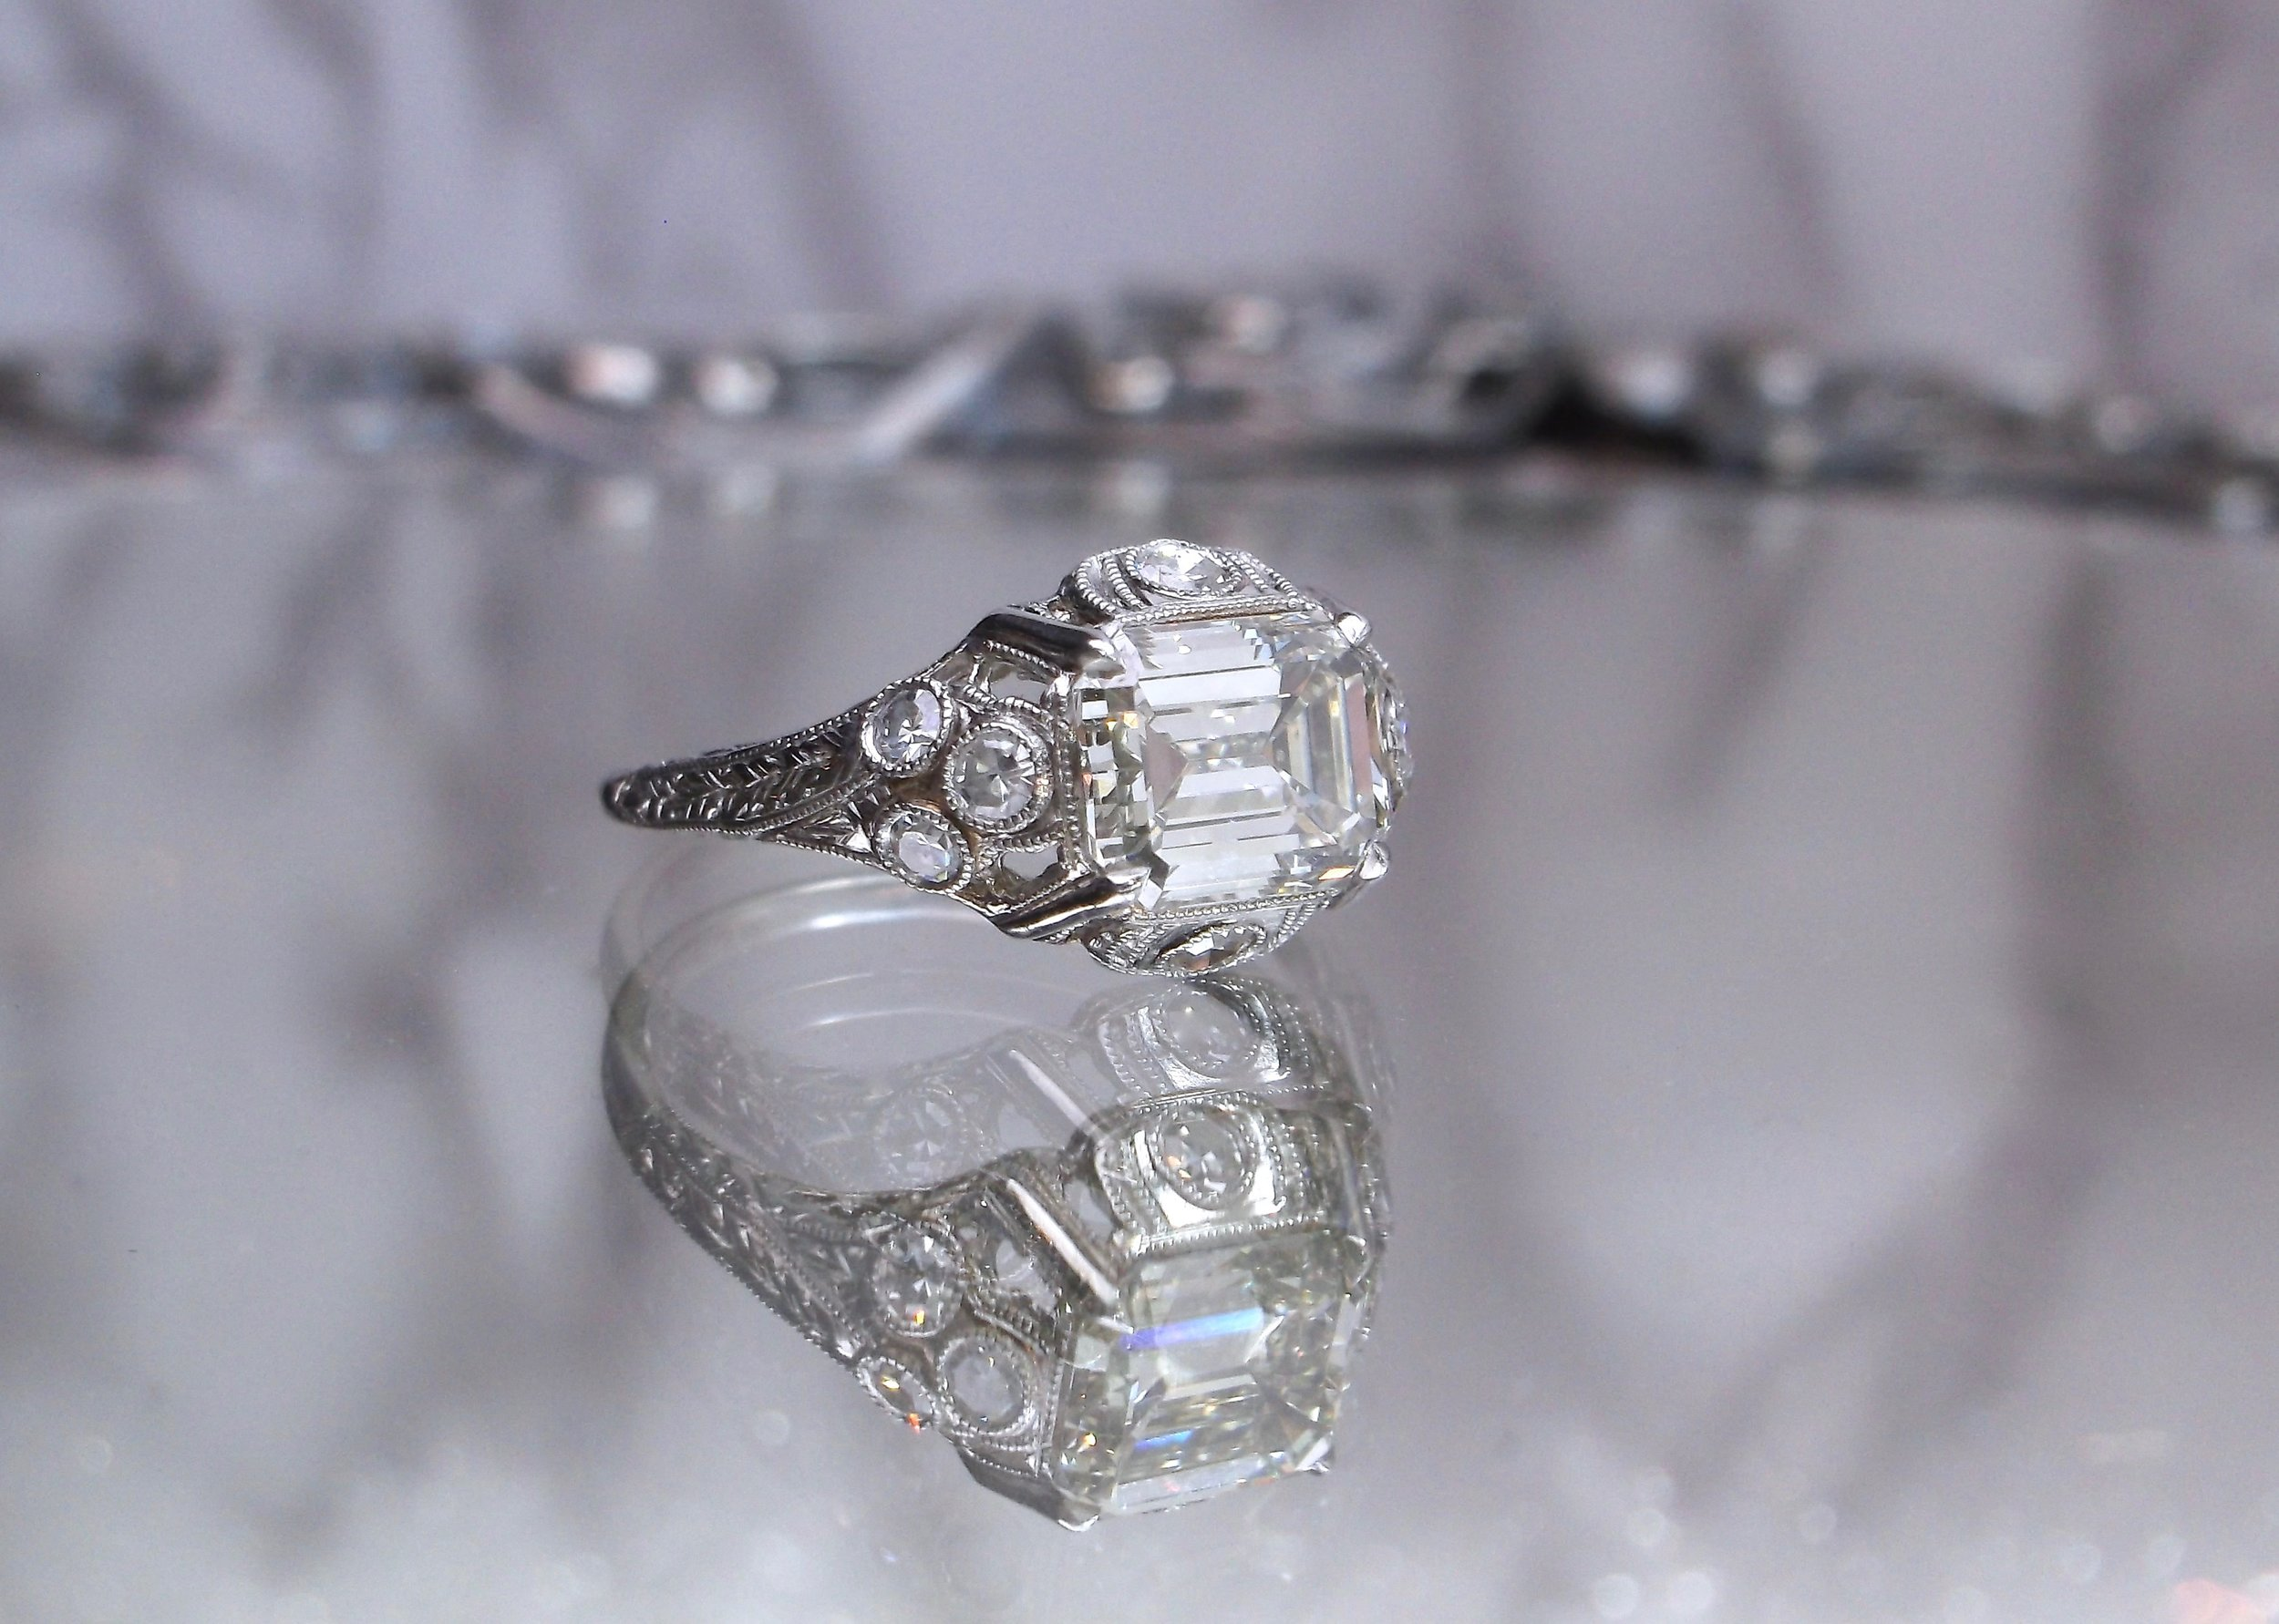 Double the Deco, double the fun! Shop this fabulous 1.56 carat emerald cut diamond ring  HERE.